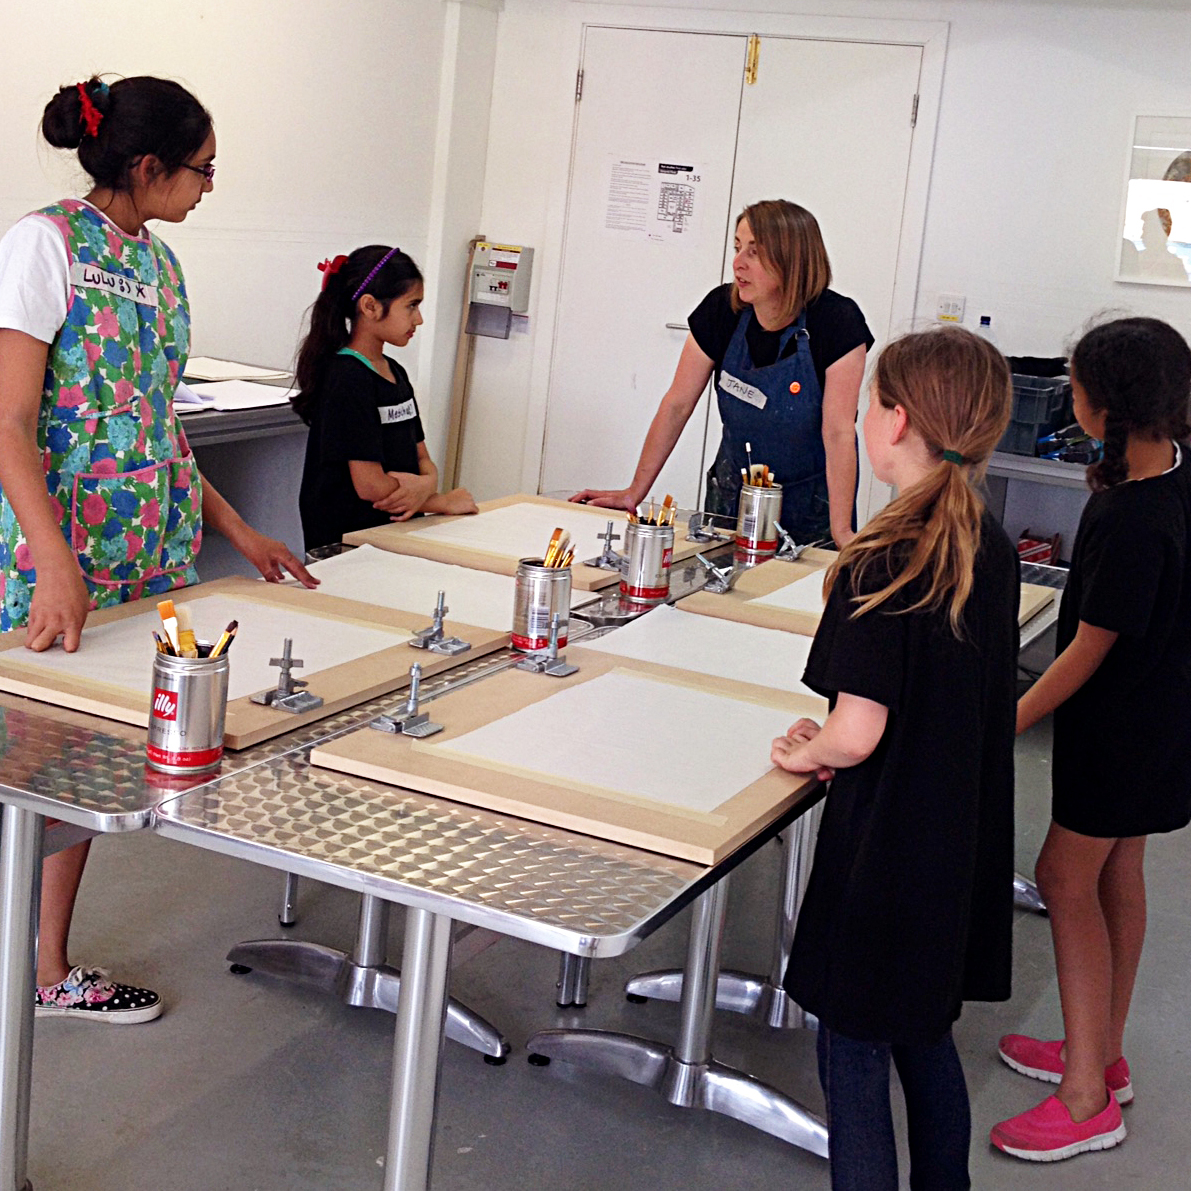 Jane_Bain_kids_workshop_01.jpg